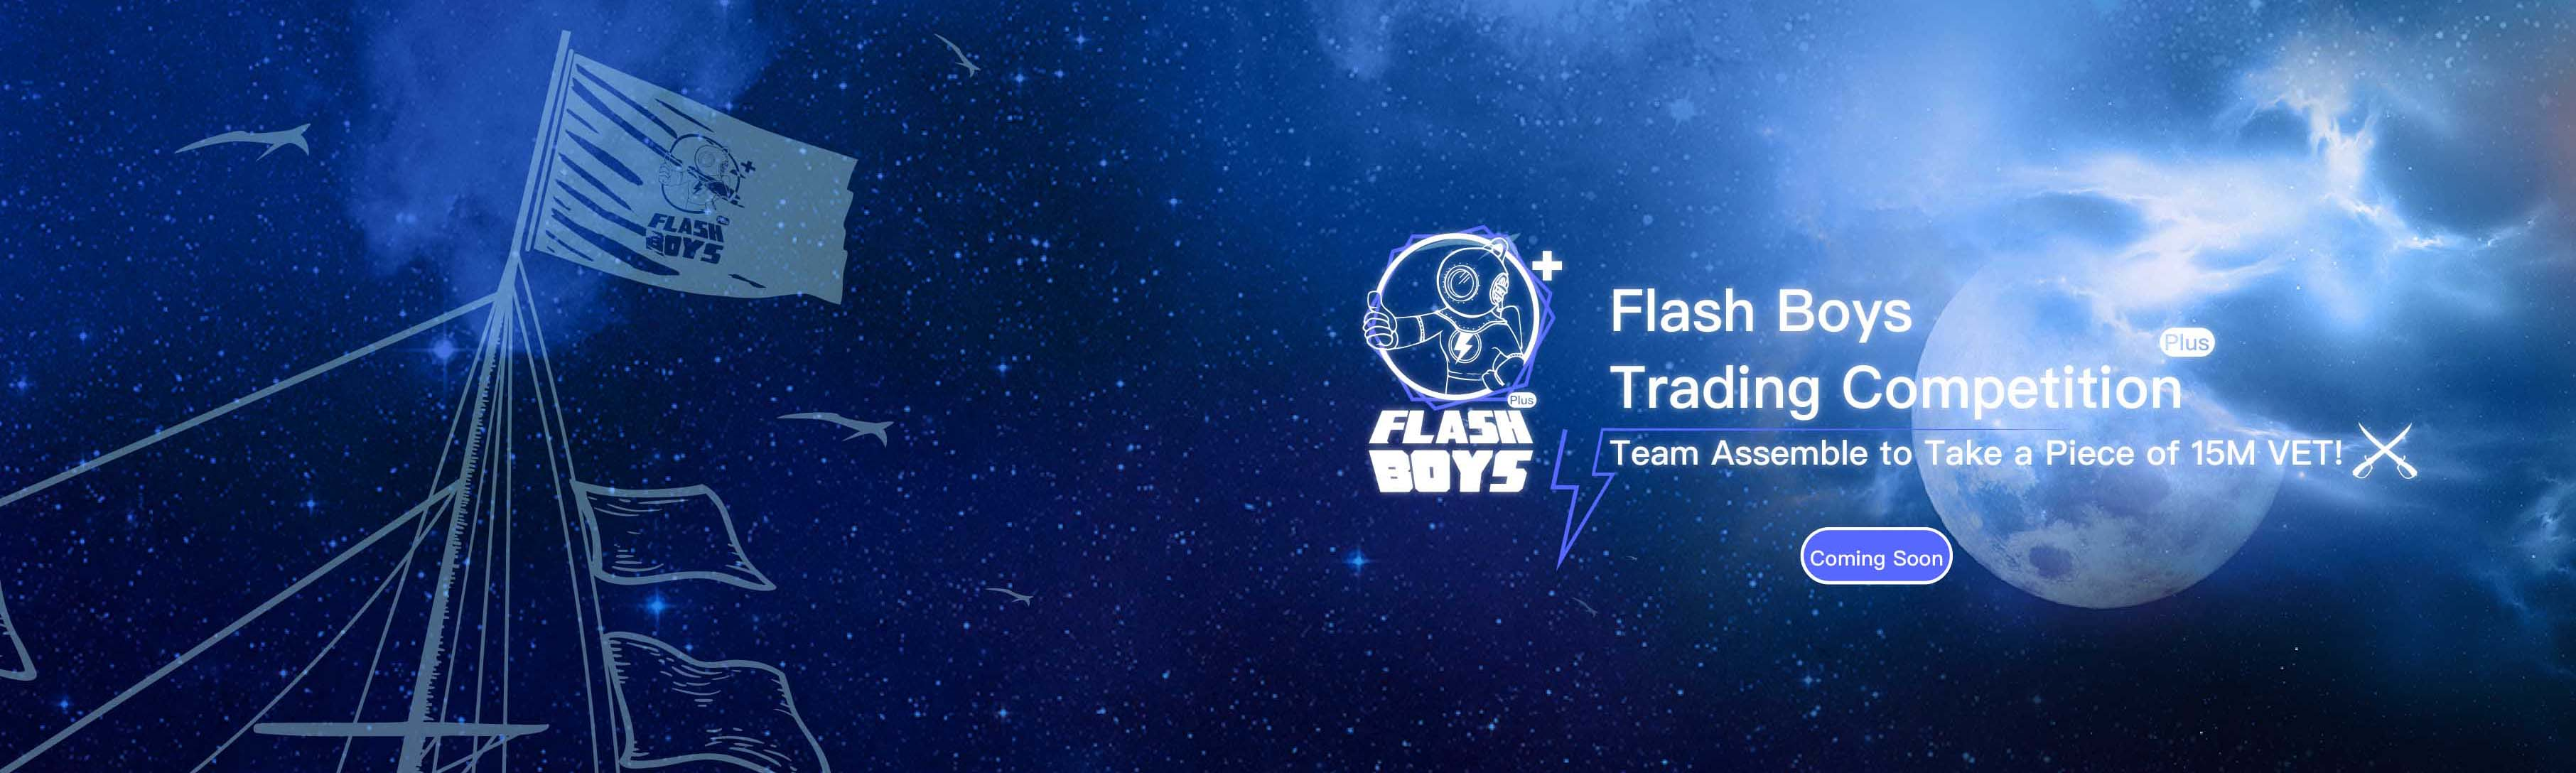 https://support.oceanex.pro/hc/en-us/articles/360022194131-Flash-Boys-Trading-Competition-Plus-is-Coming-Soon-Come-on-board-to-win-100-000-equiv-token-prize-together-